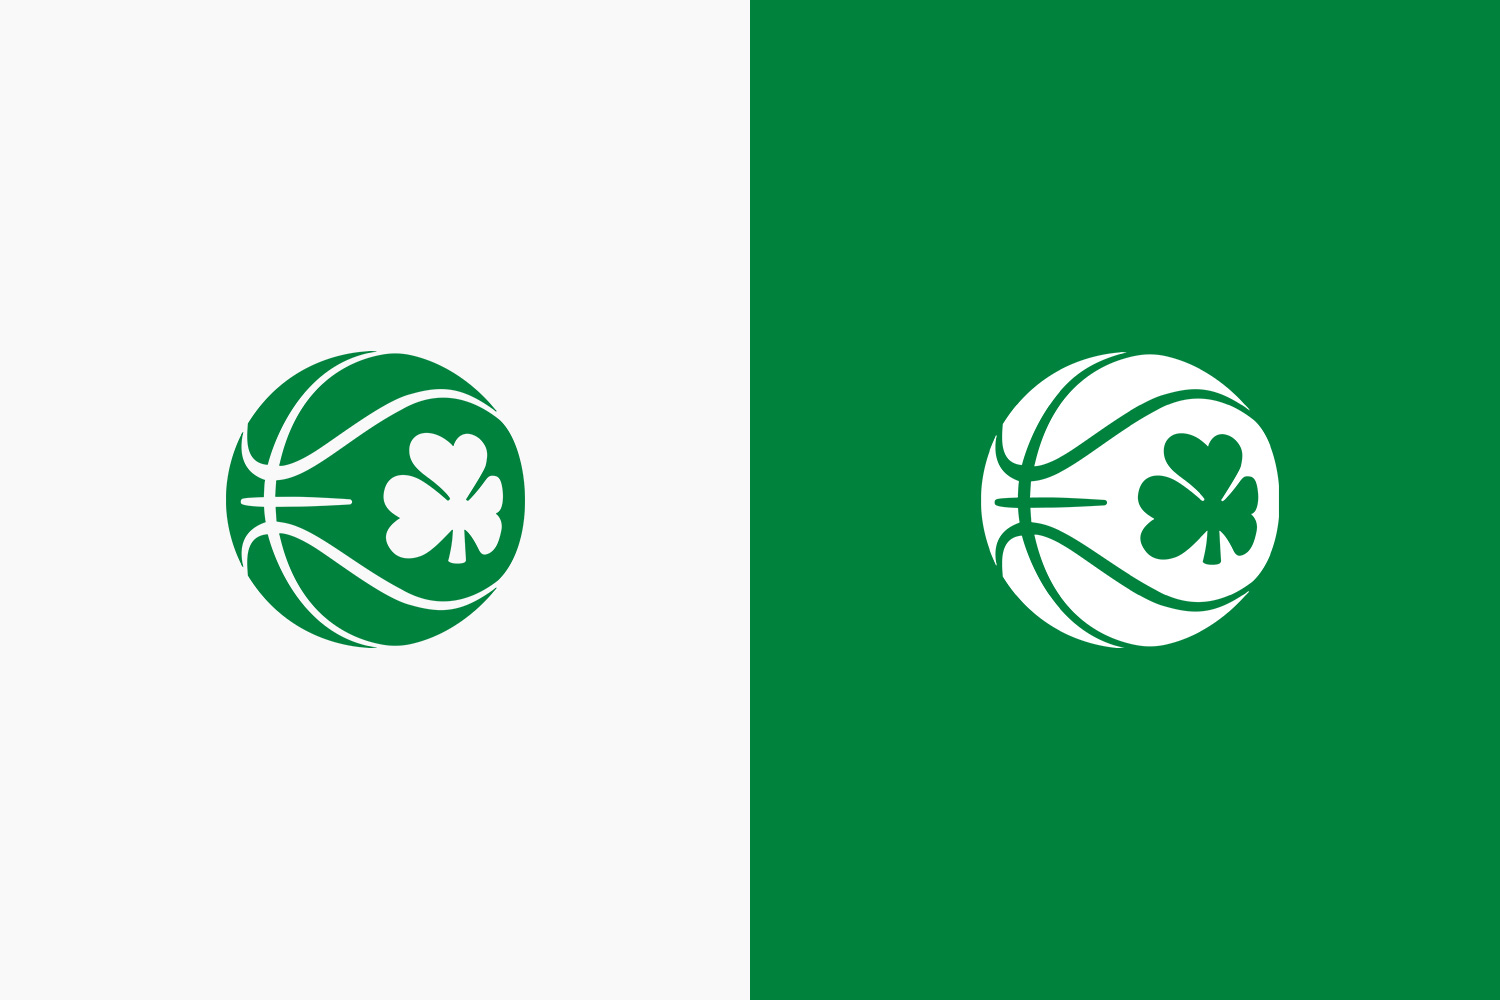 Green and white side by side comparison of the new basketball ireland logo designed by Adam Ingle